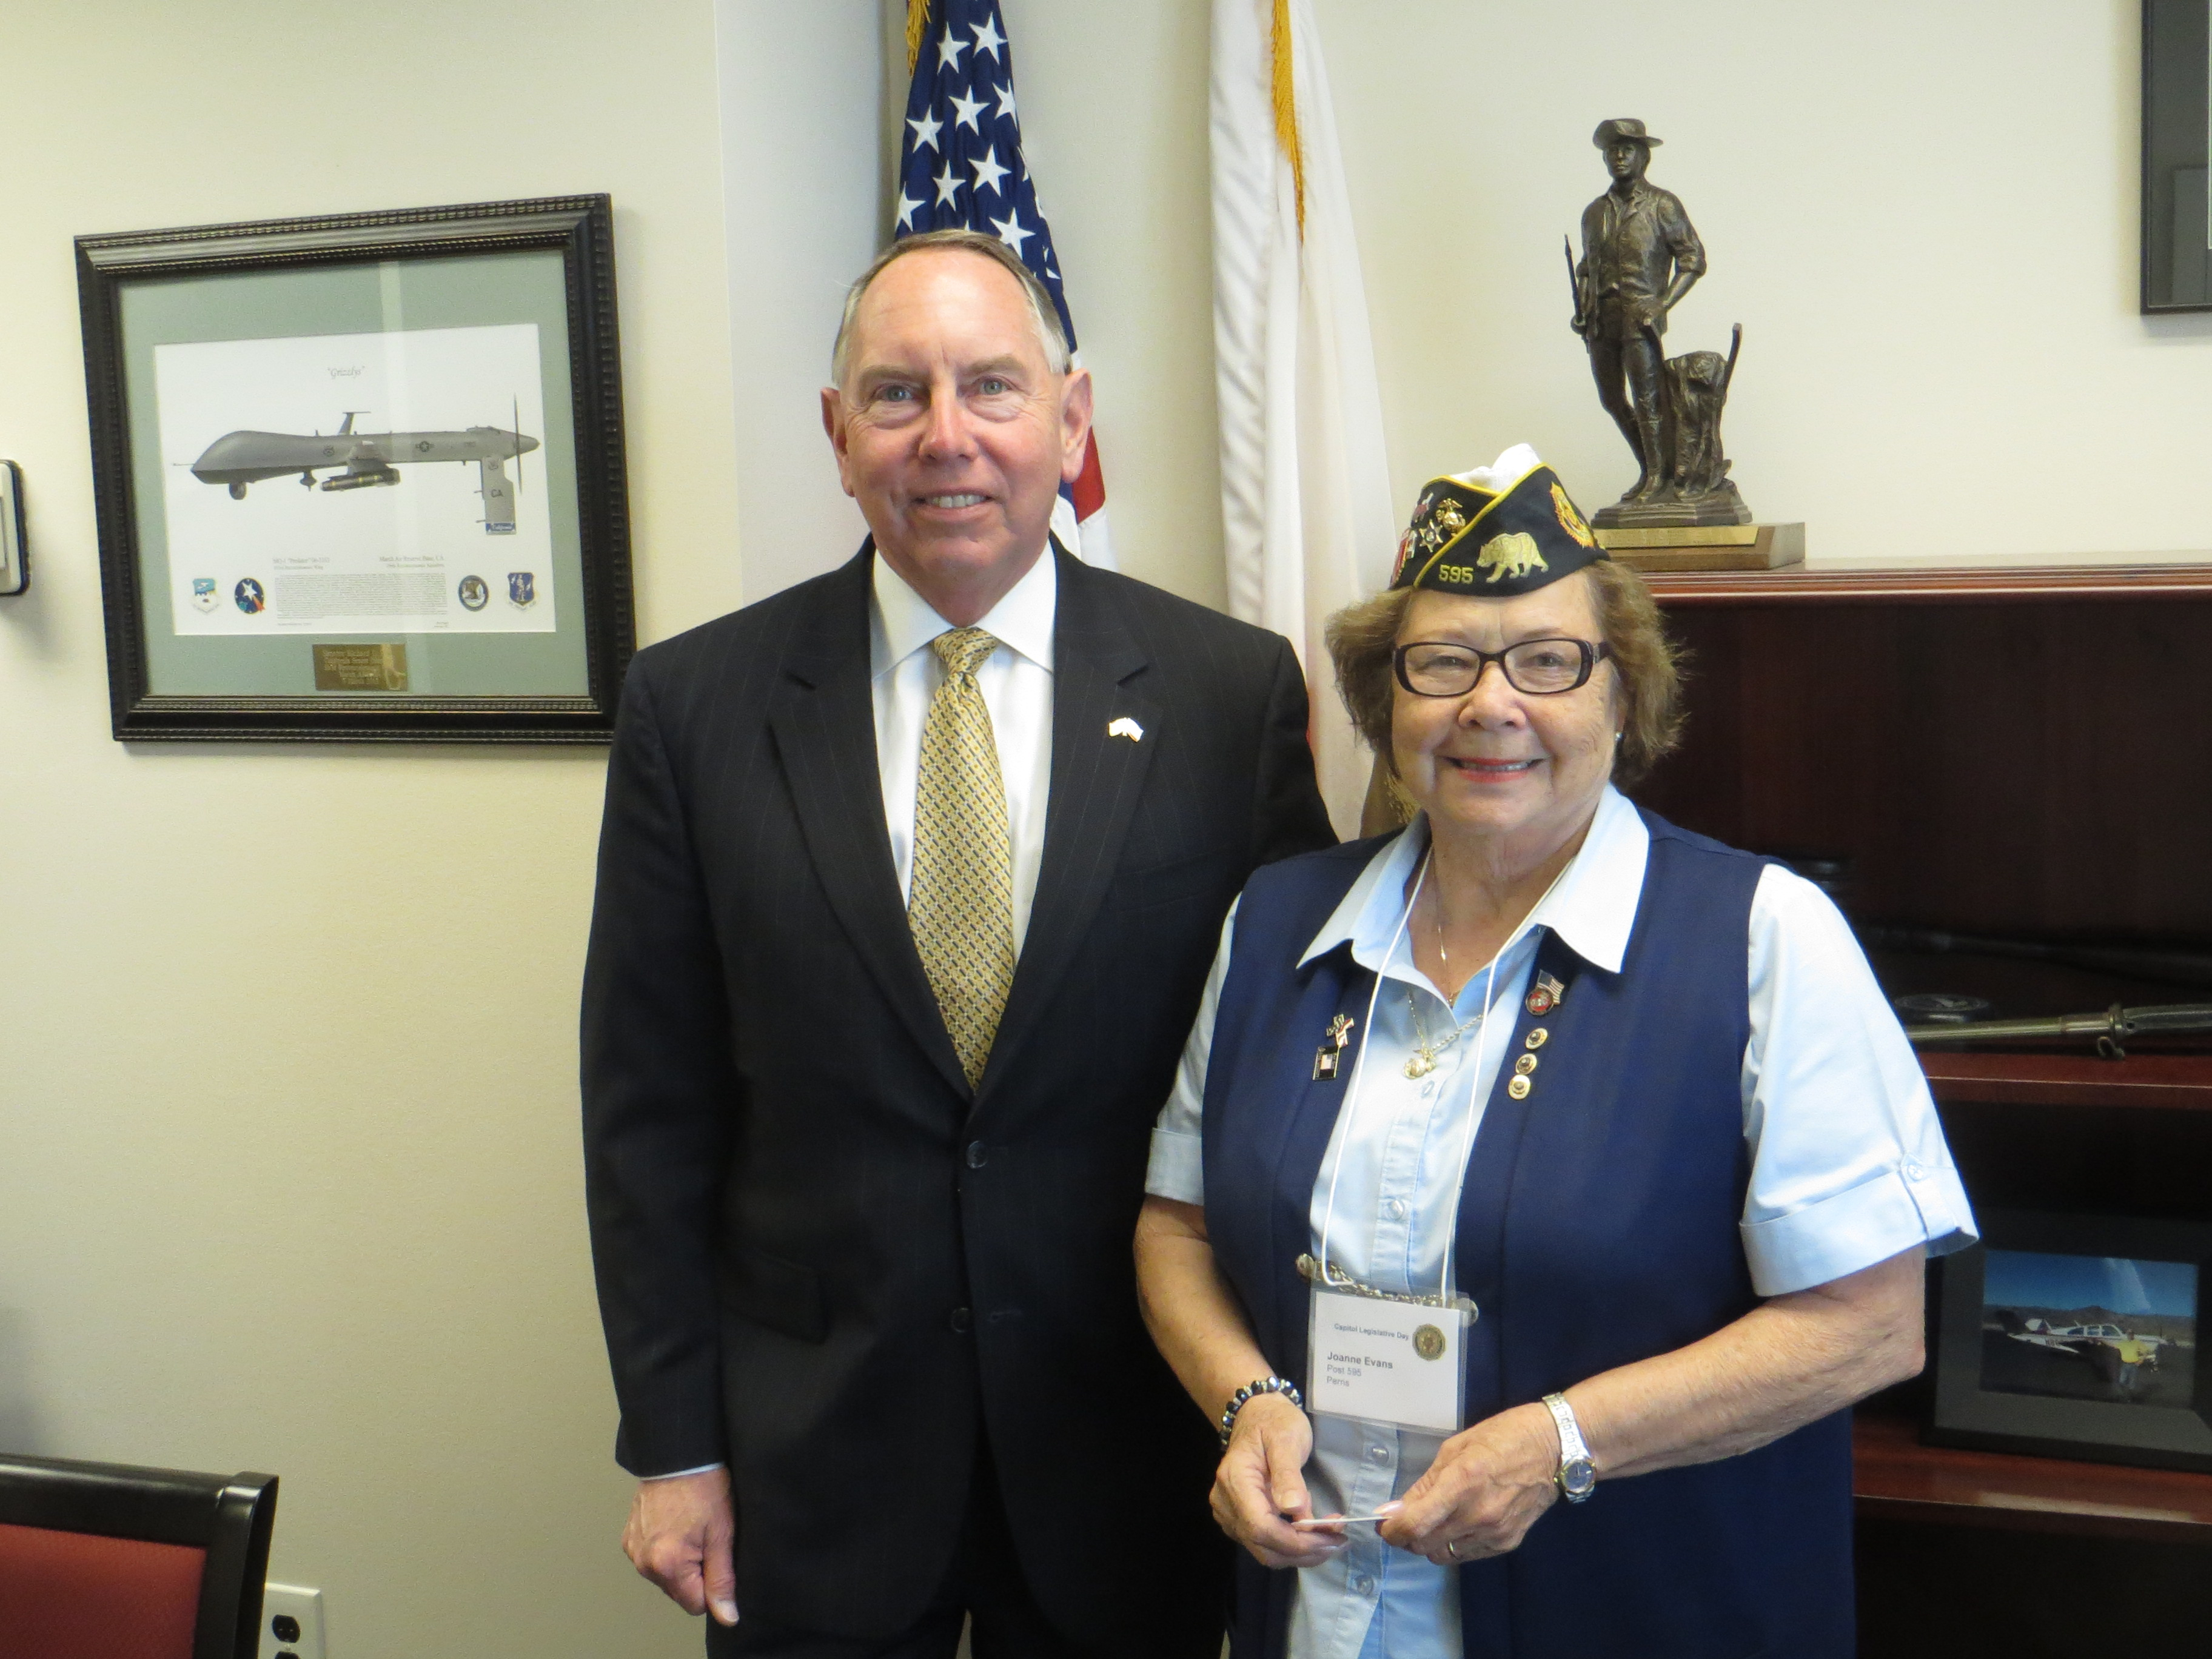 Senator Roth met with former Perris City Councilmember and USMC Veteran Joanne Evans during American Legion legislative Action Day on Wednesday May 1, 2013 in Sacramento